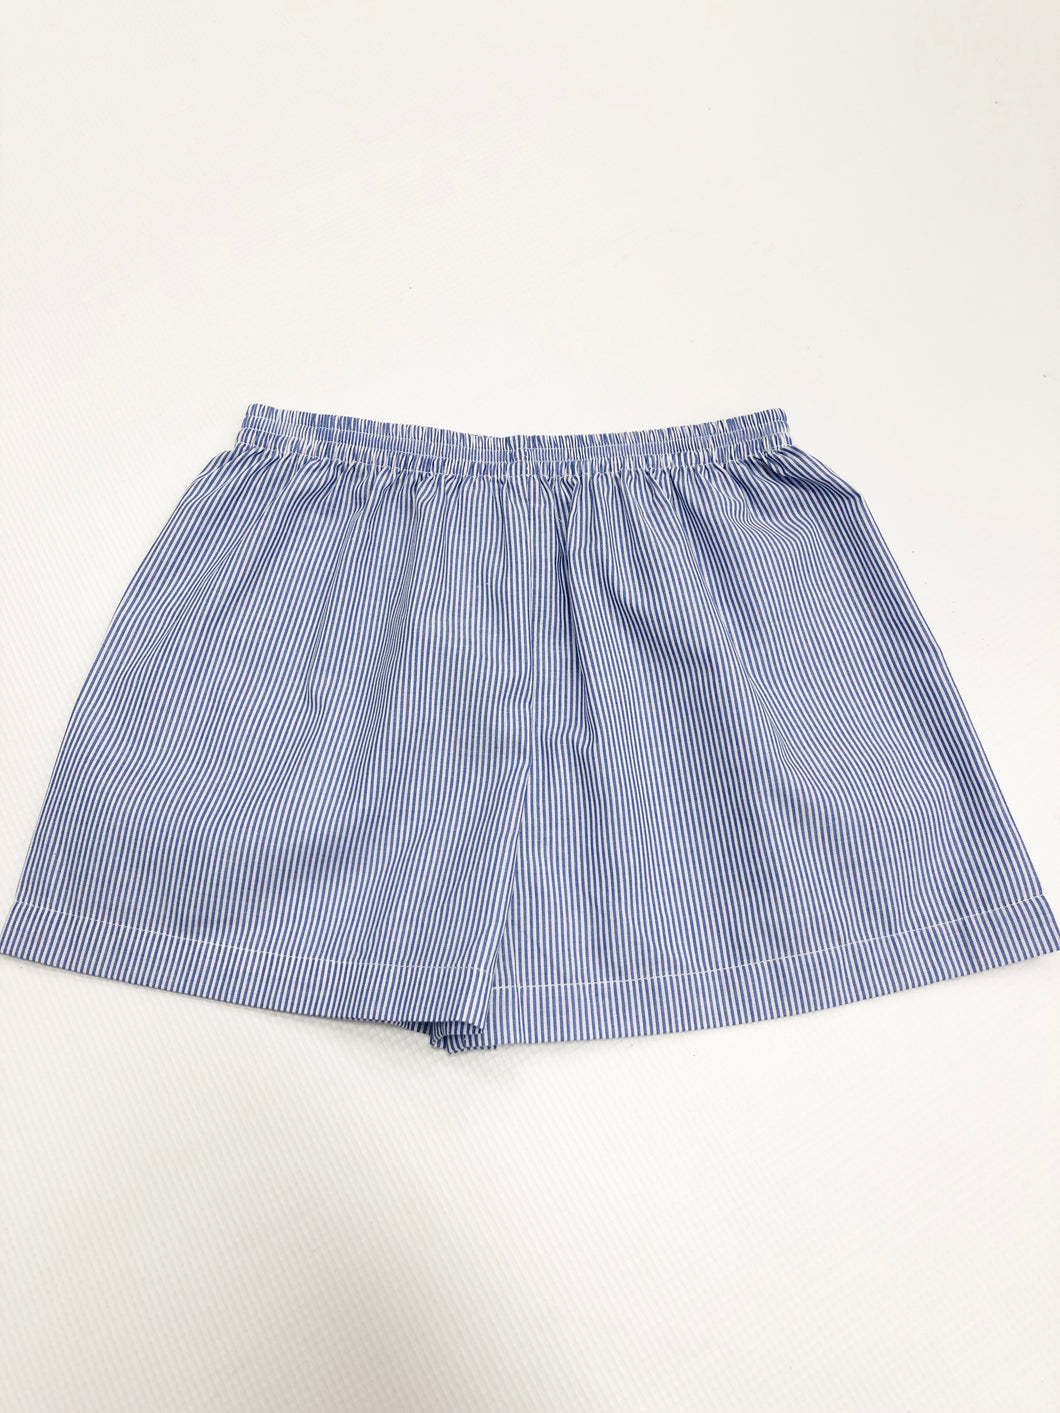 Blue & White Striped Short